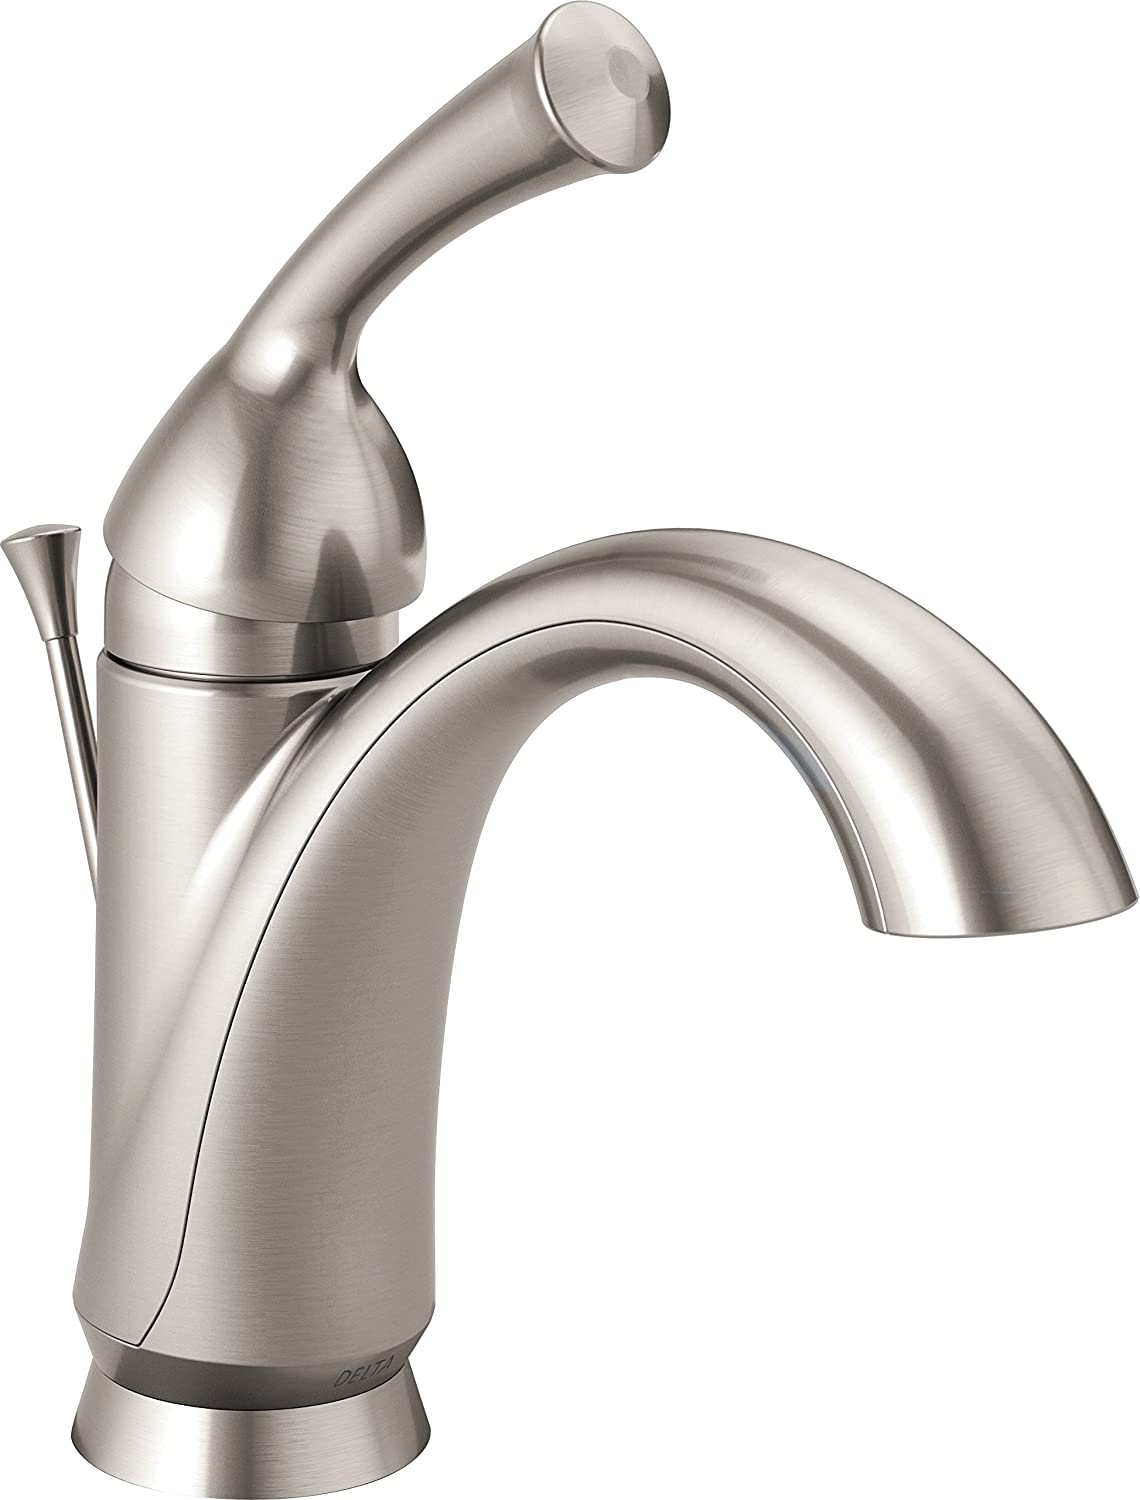 Delta 15999-SS-DST Haywood Single-Handle Bathroom Faucet with ...